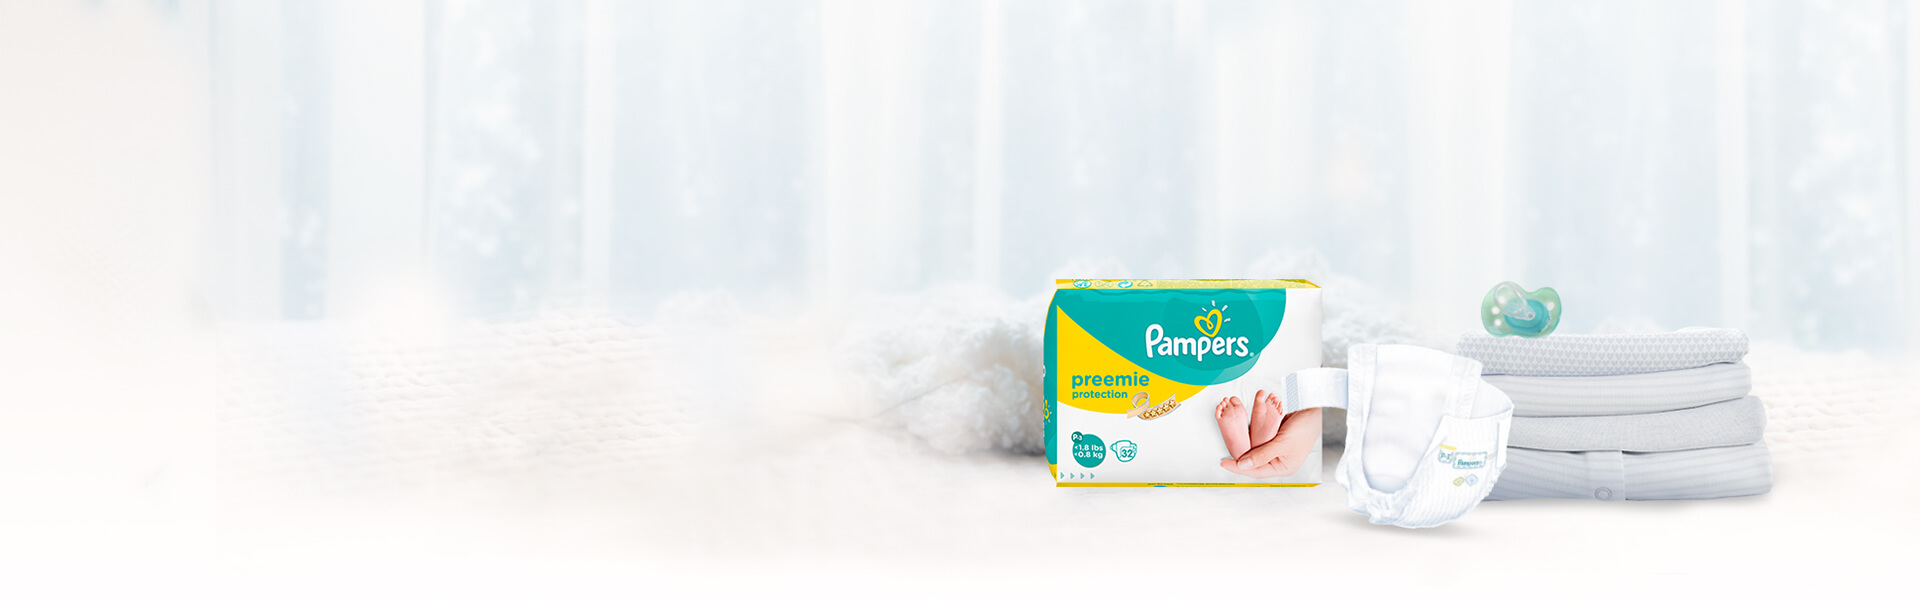 Pampers Preemie Protection Nappies